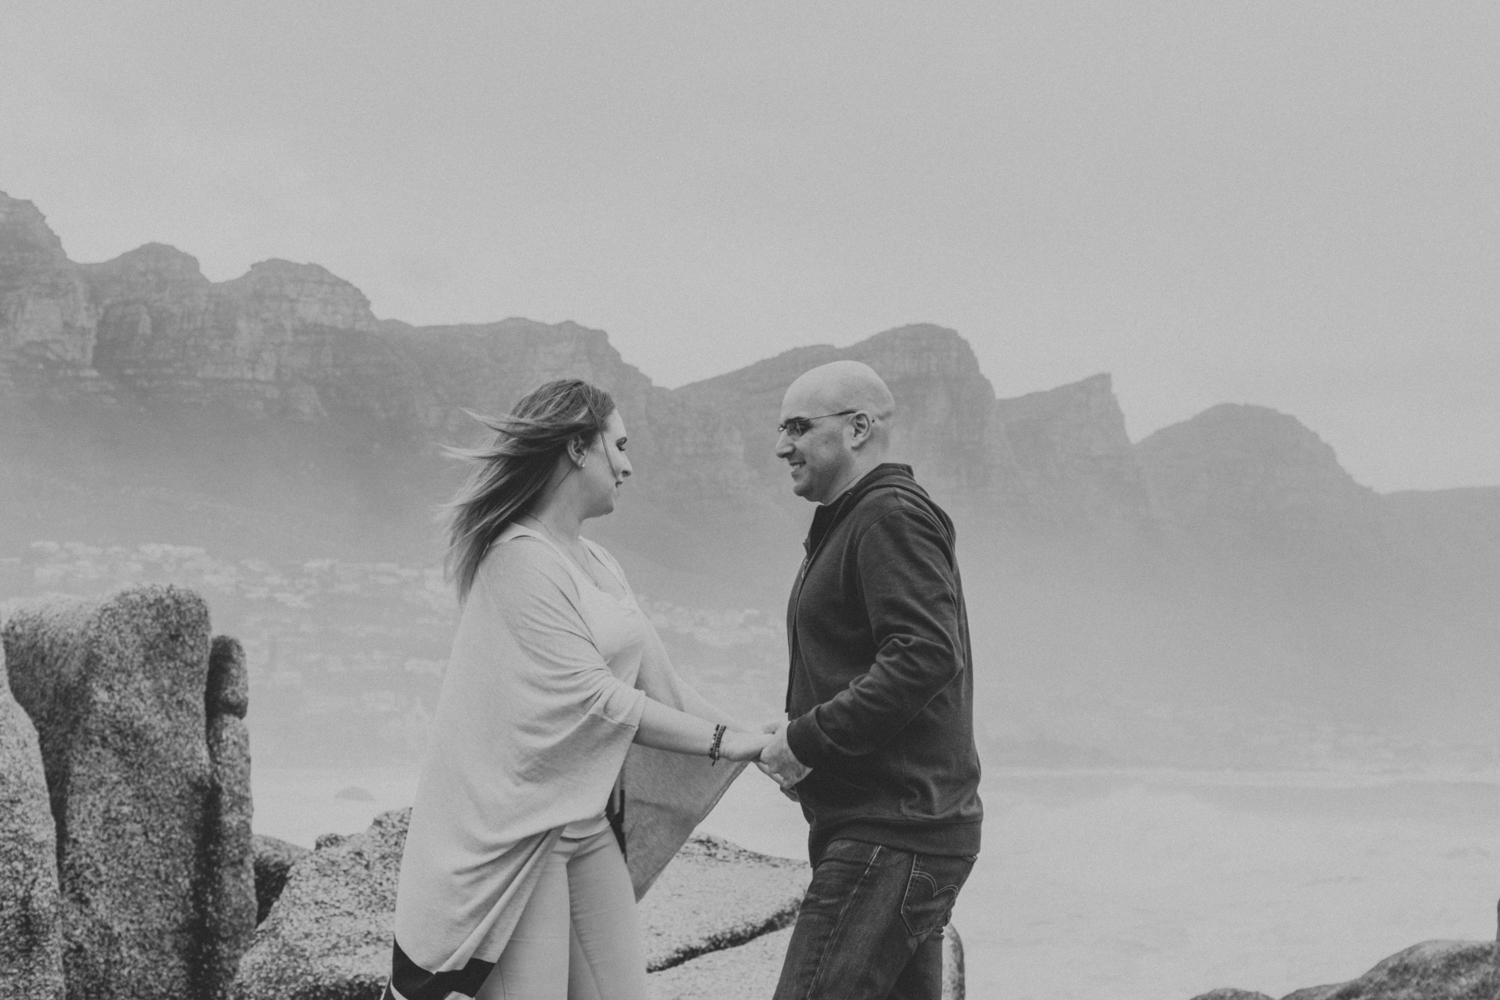 Enagagement photography Cape Town- Bianca Asher Photography-5.jpg